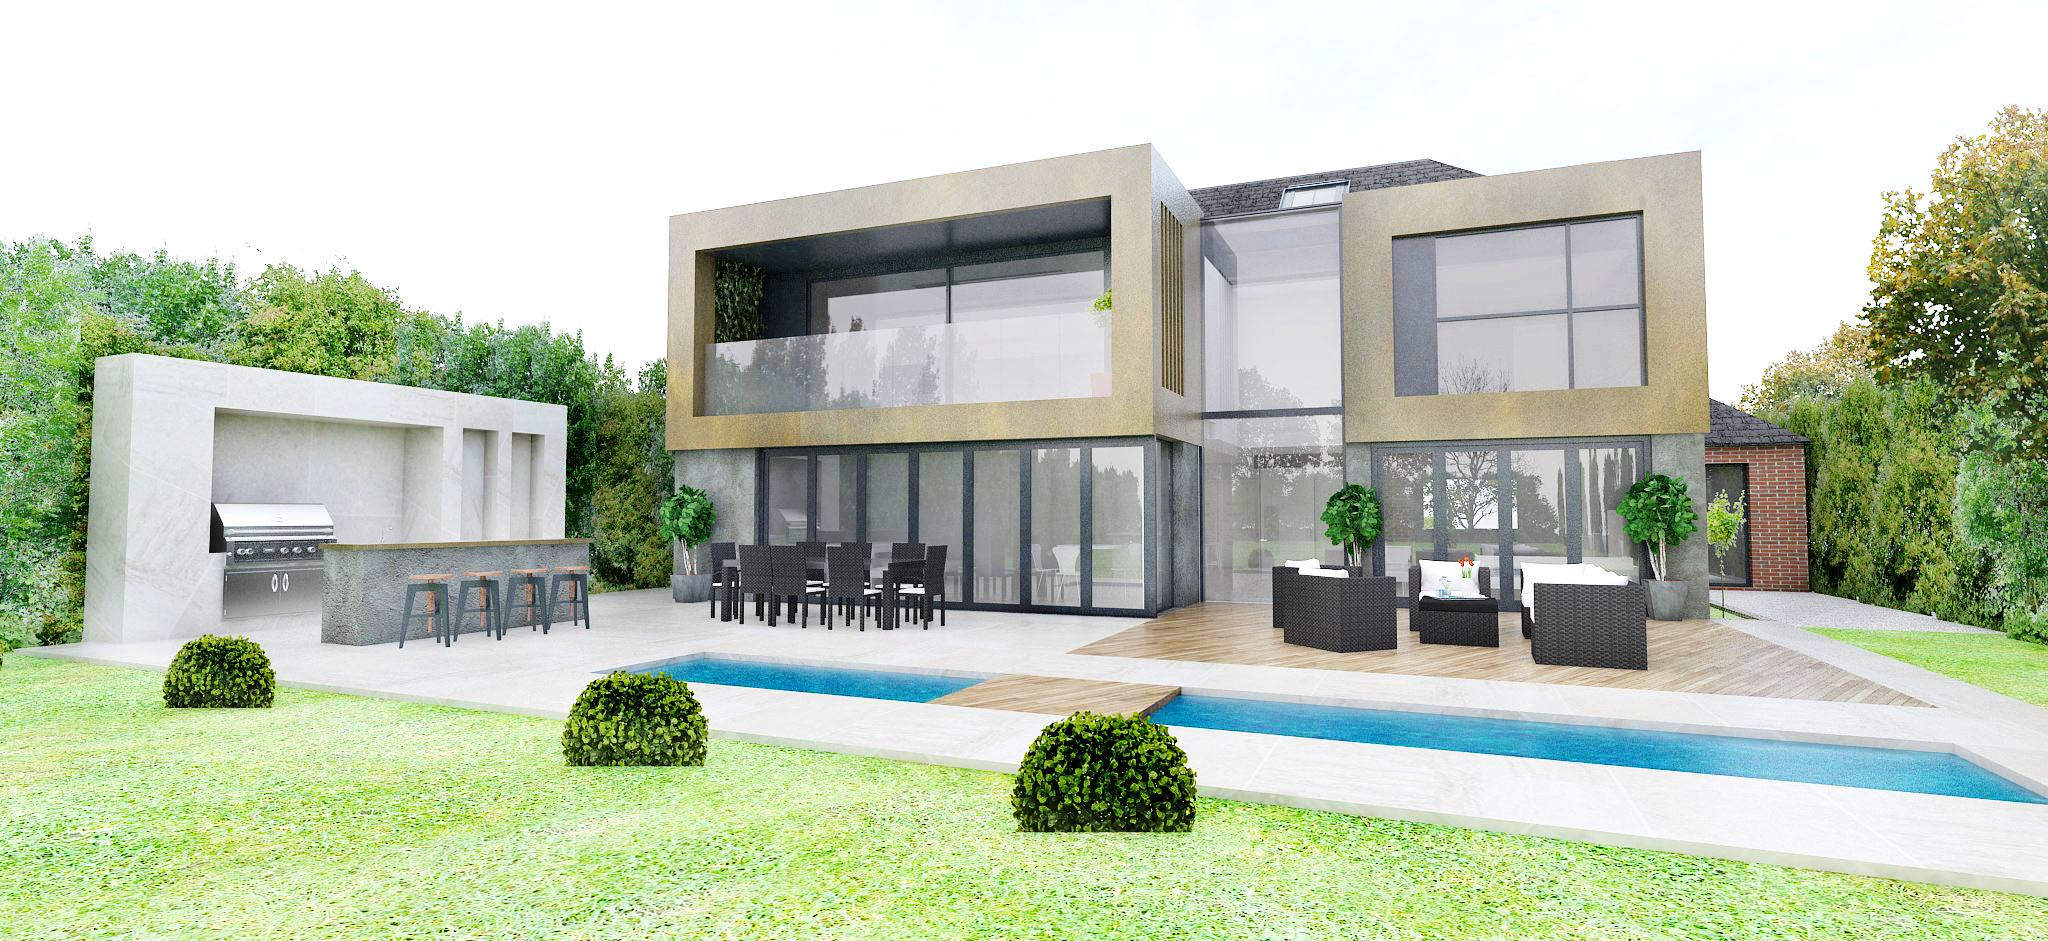 REAR FACADE REVISED website.jpg